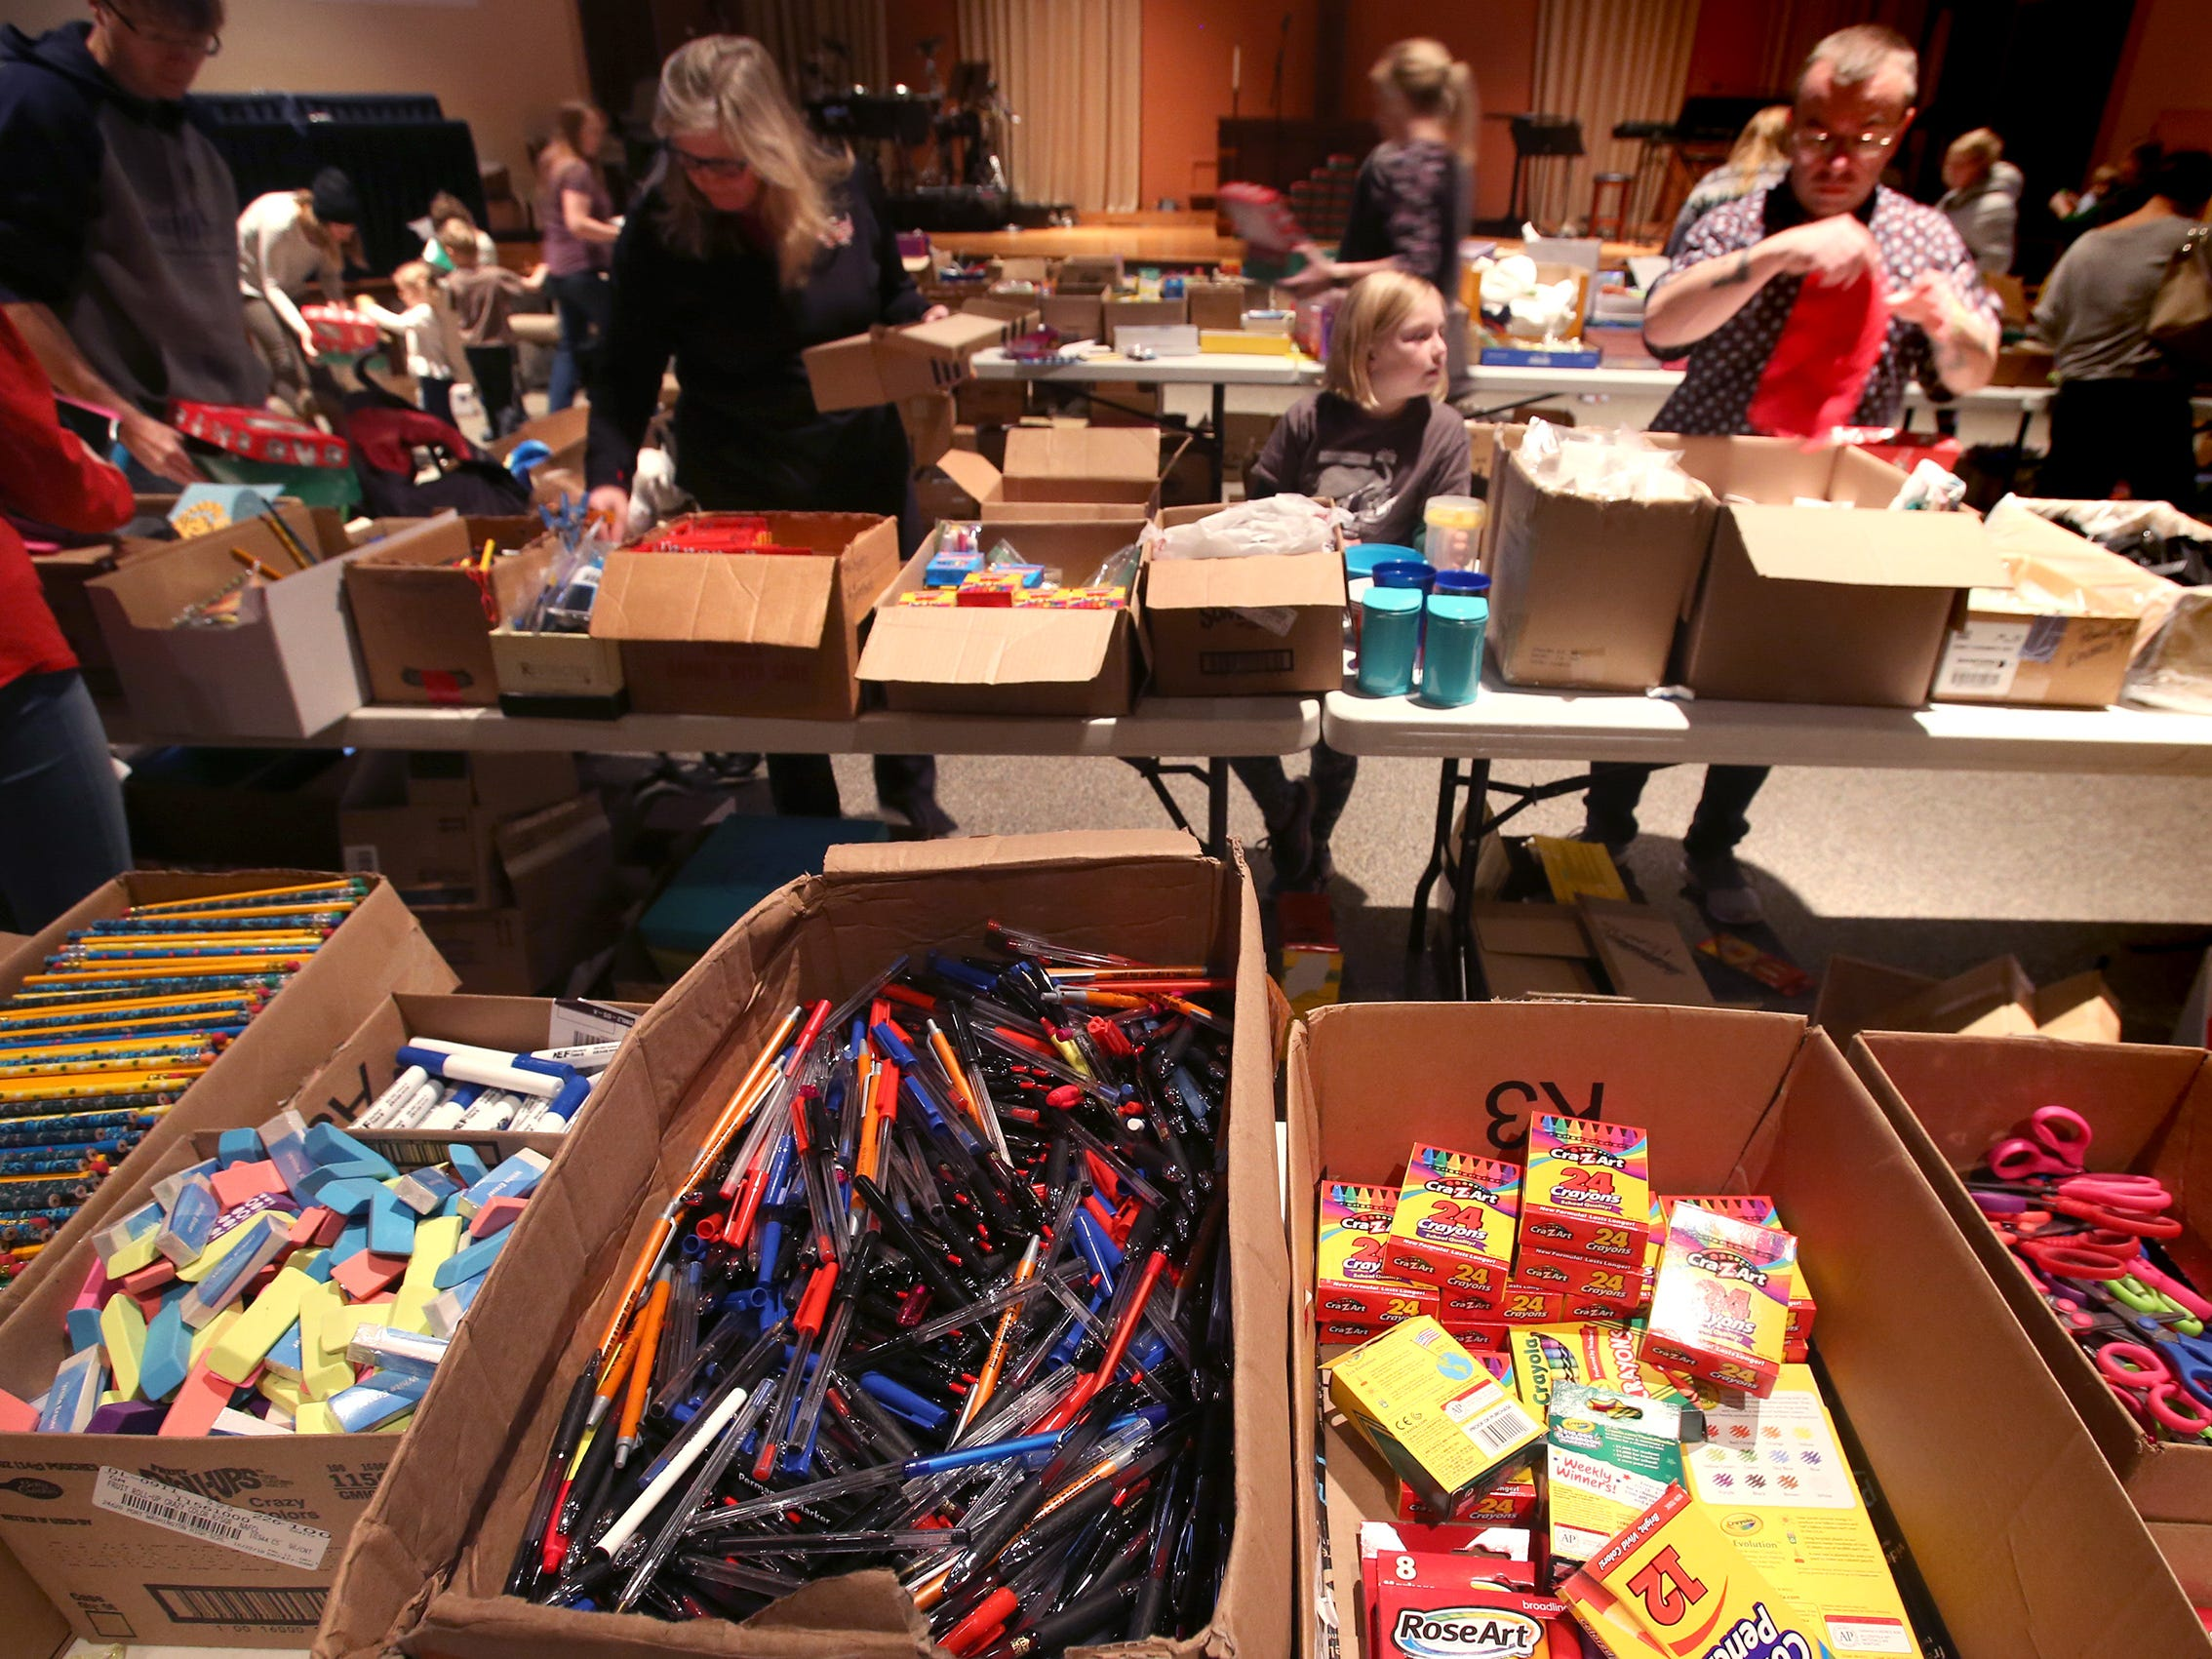 Volunteers select from boxes of school supplies, toys, clothing, personal care items and more to fill shoebox-sized containers for the worldwide Operation Christmas Child at Mequon's Christ Church on Nov. 17.